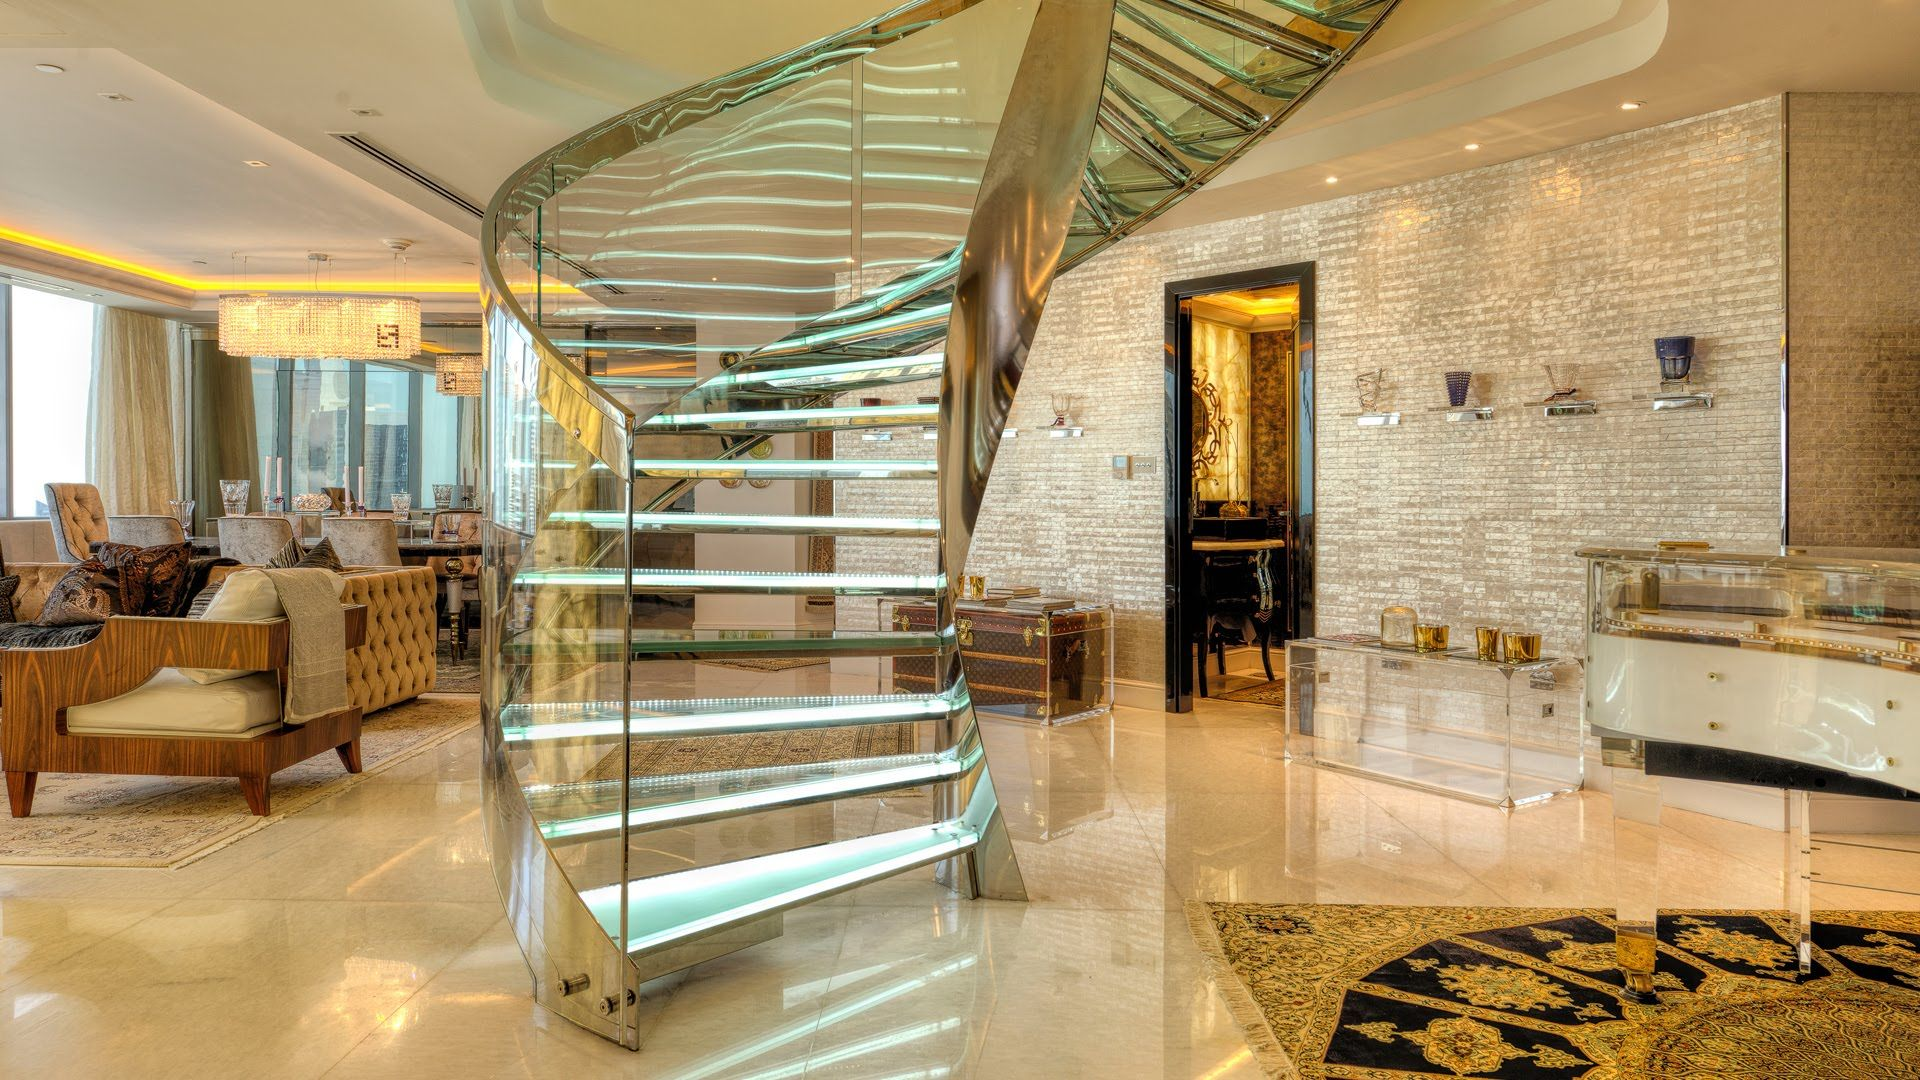 Dubai Luxury Property View From Inside Quot The Glass